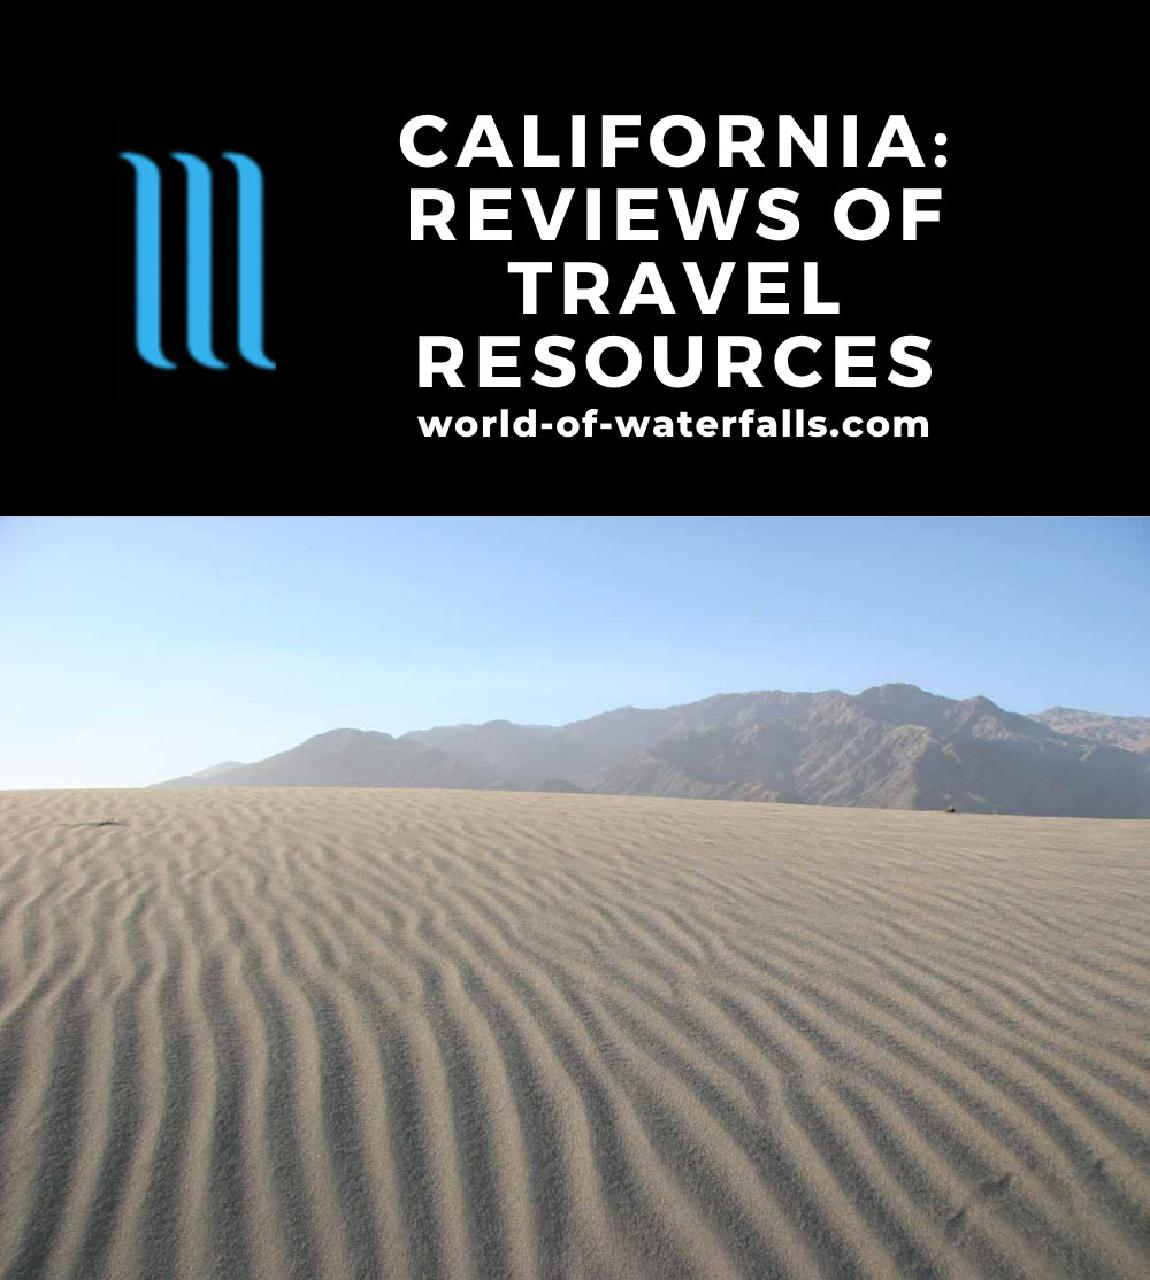 California: Reviews of Travel Resources